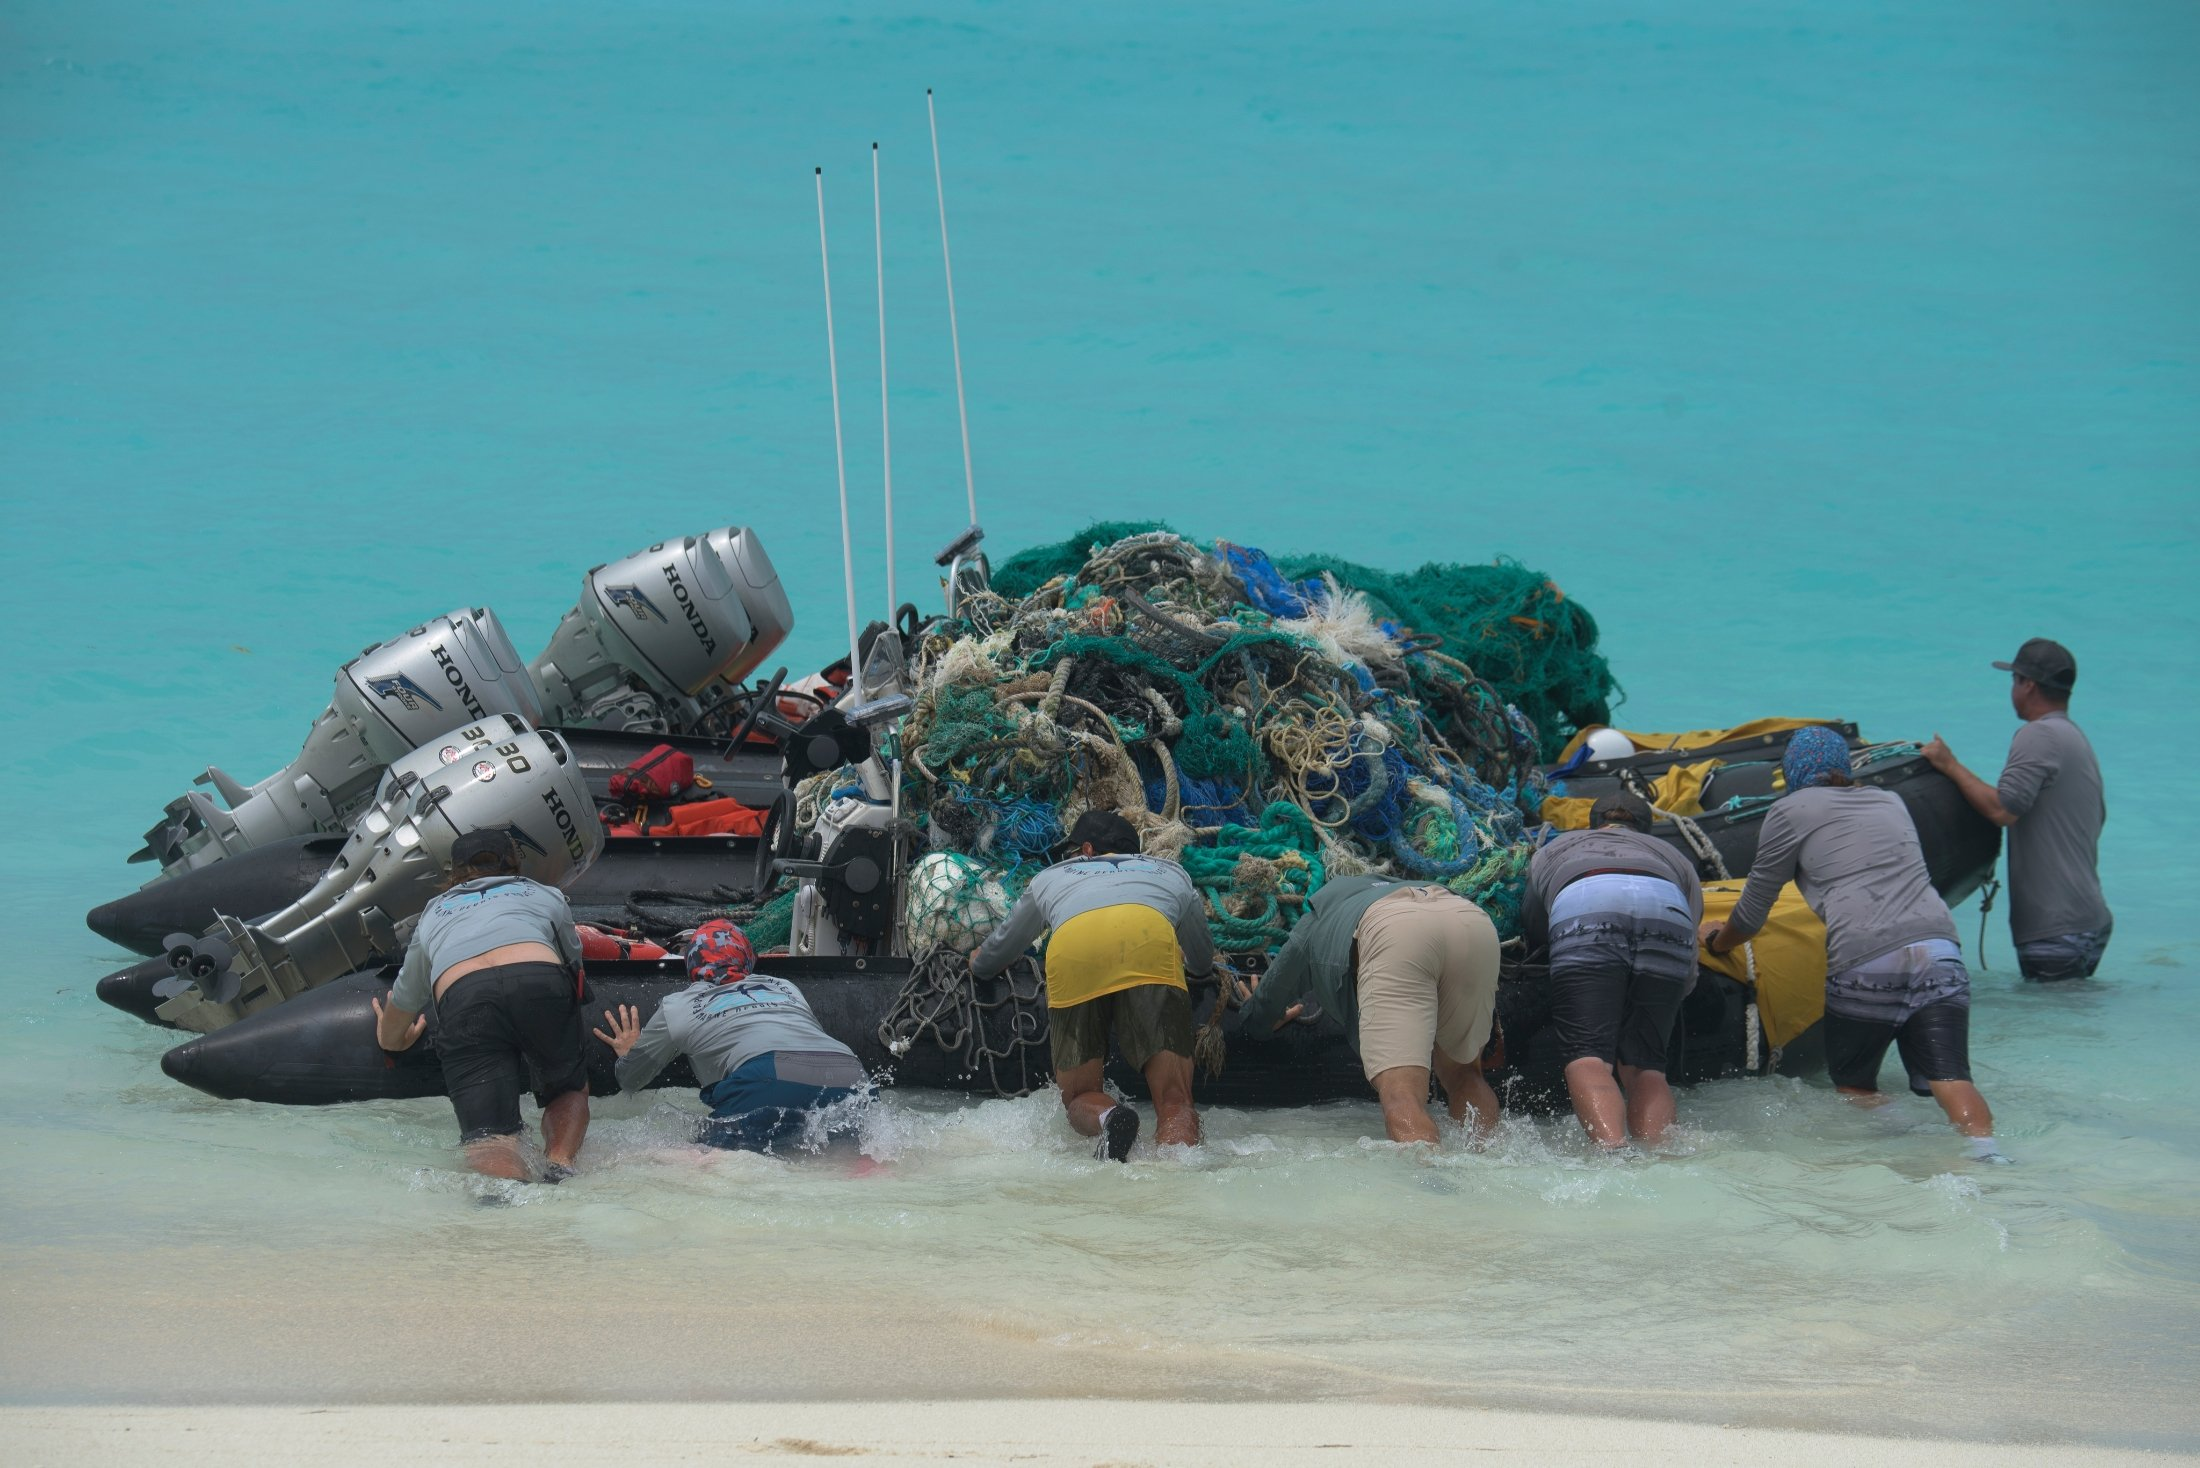 Workers with the Papahanaumokuakea Marine Debris Project push small boats loaded with fishing nets and plastic off Kure Atoll in the Northwestern Hawaiian Islands, Hawaii, April 10, 2021. (Papahanaumokuakea Marine Debris Project via AP)